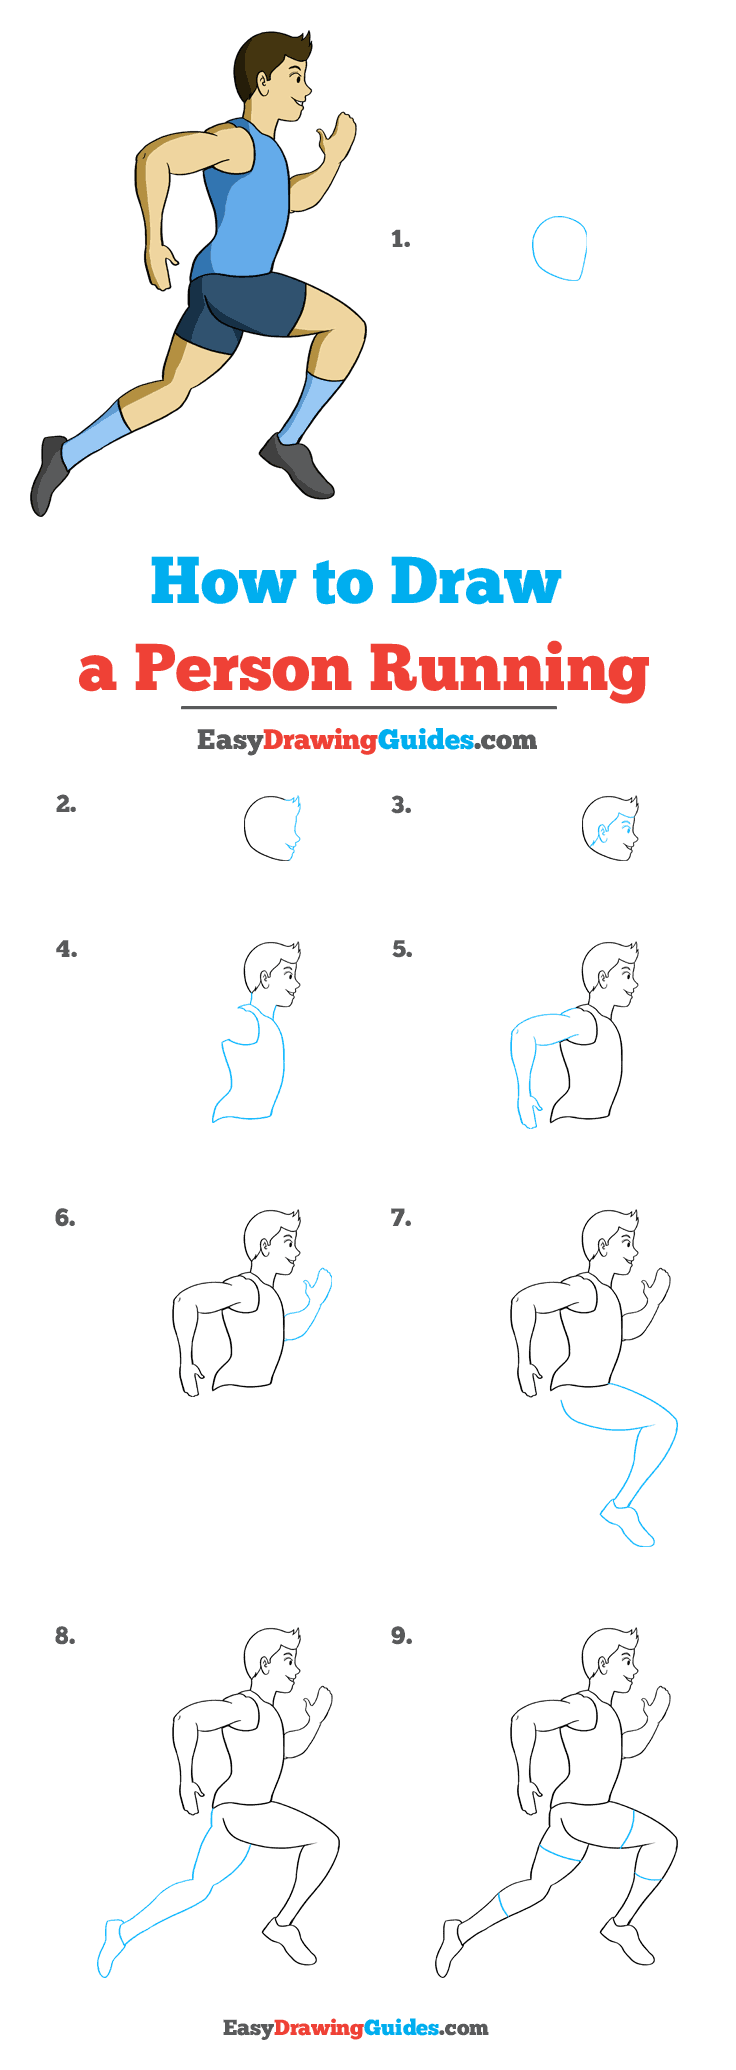 How to Draw Person Running